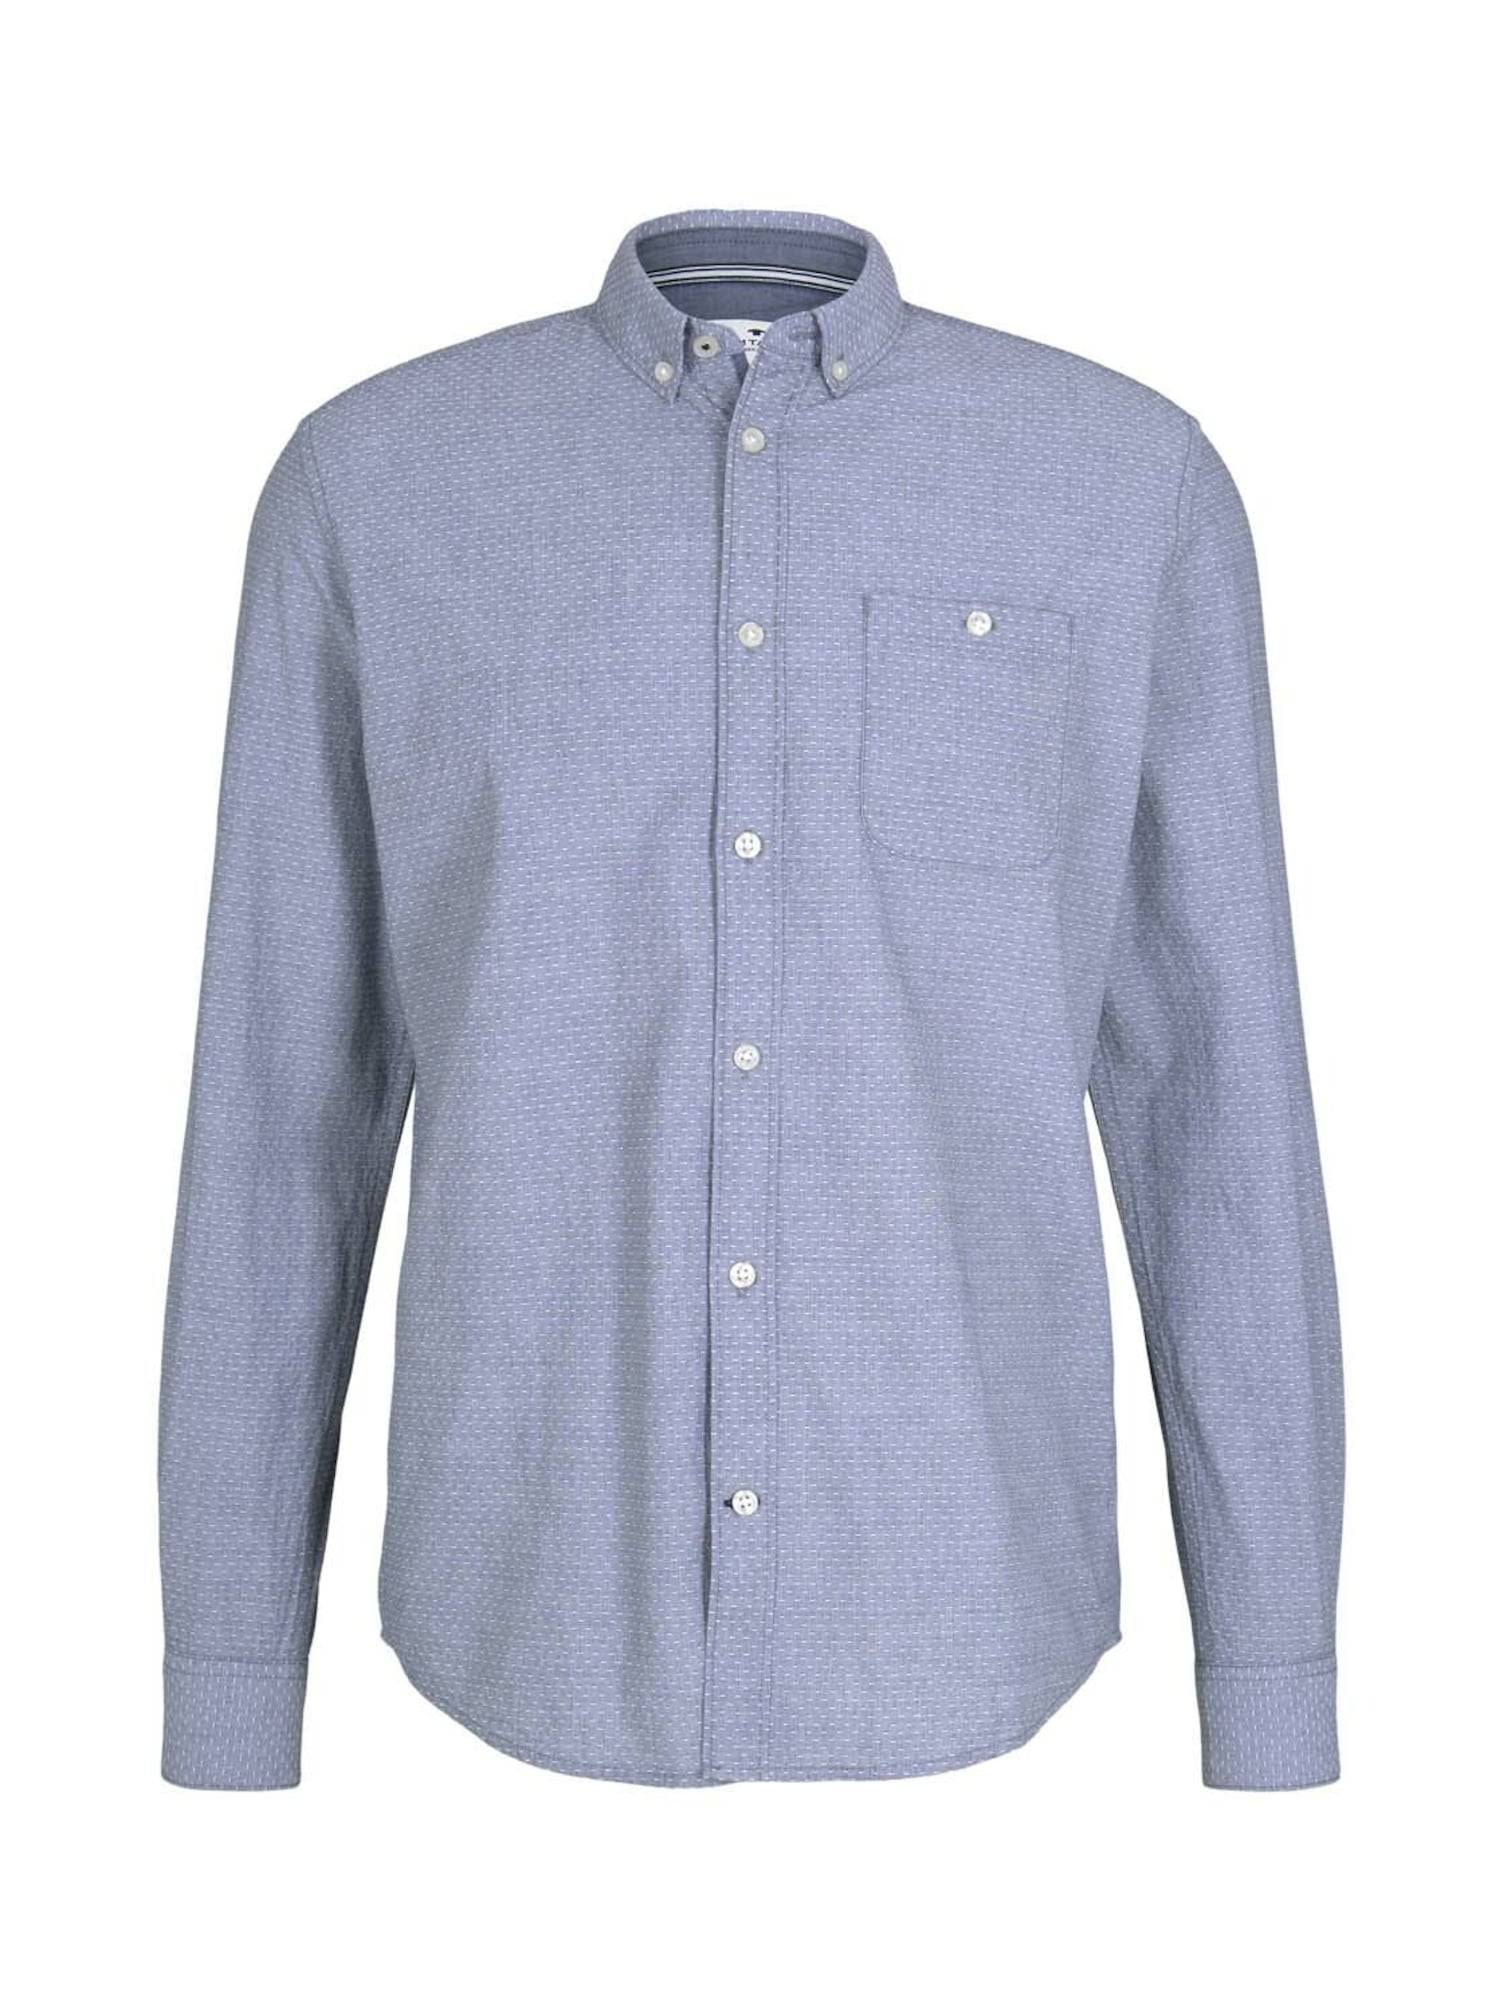 TOM TAILOR Chemise  - Bleu - Taille: XXL - male